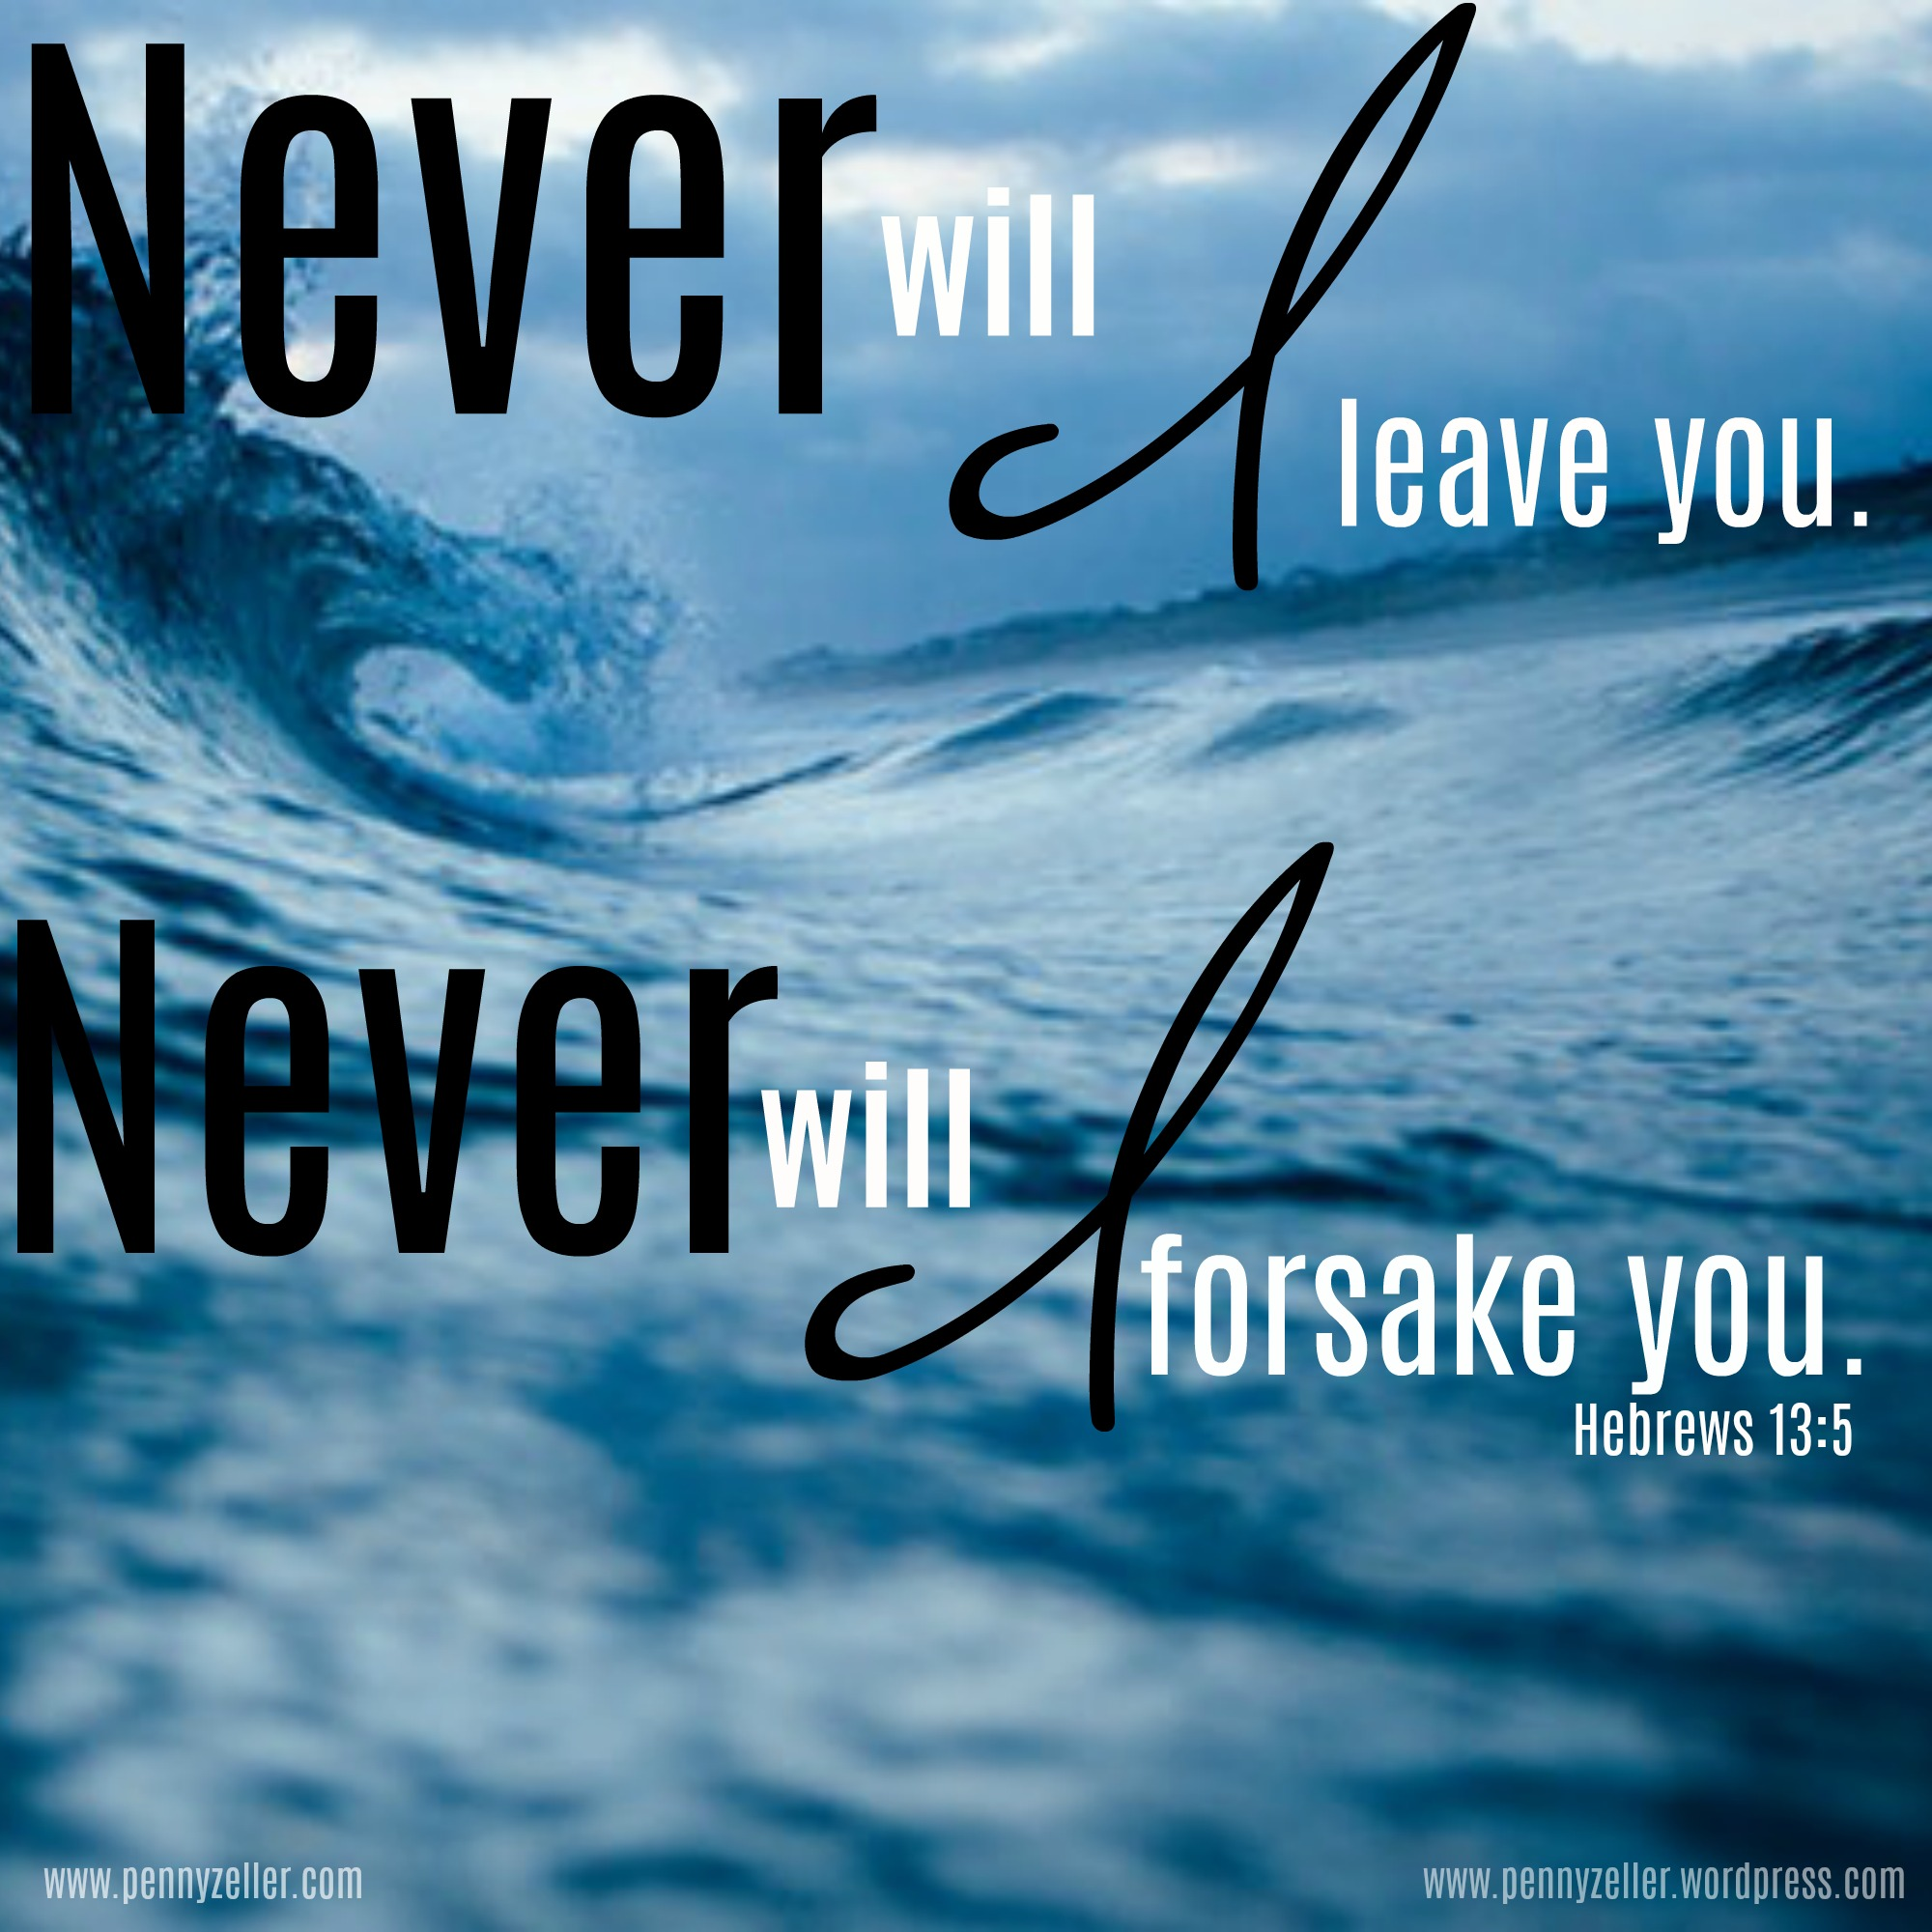 Hebrews 13 5